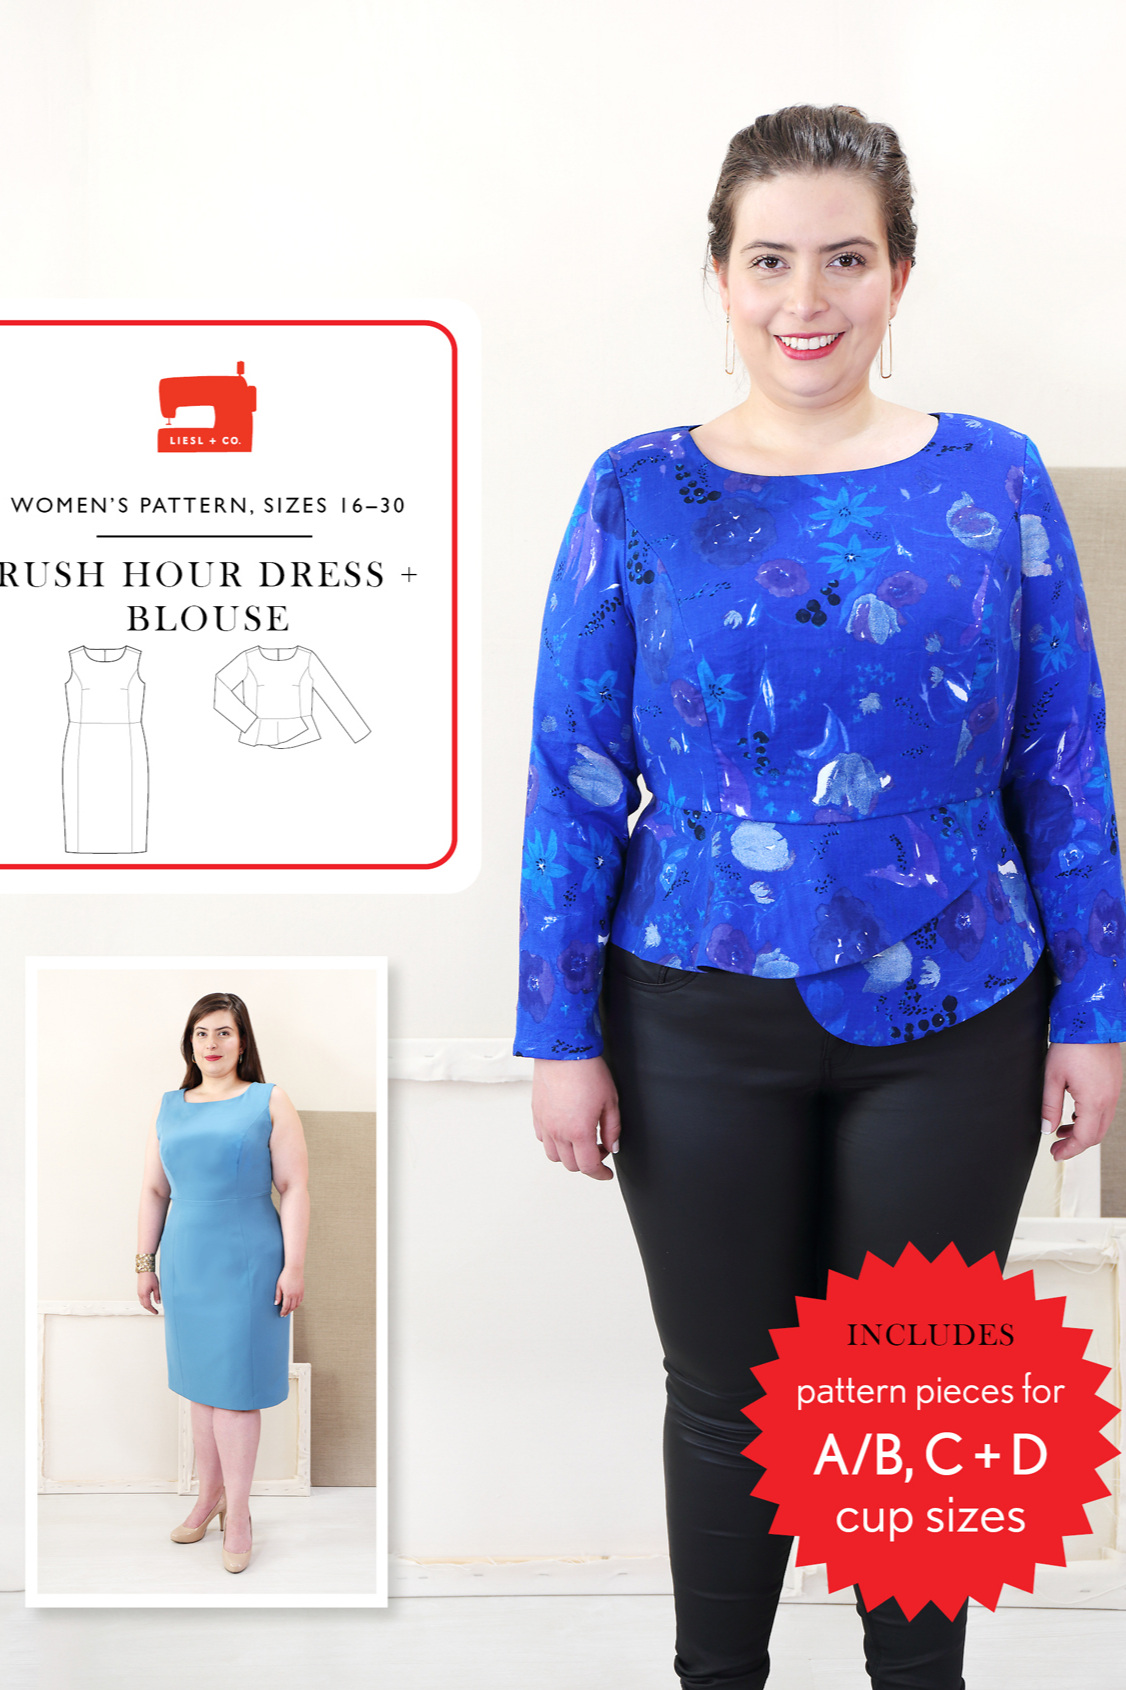 Rush Hour Dress and Blouse sewing pattern from Liesl + Co